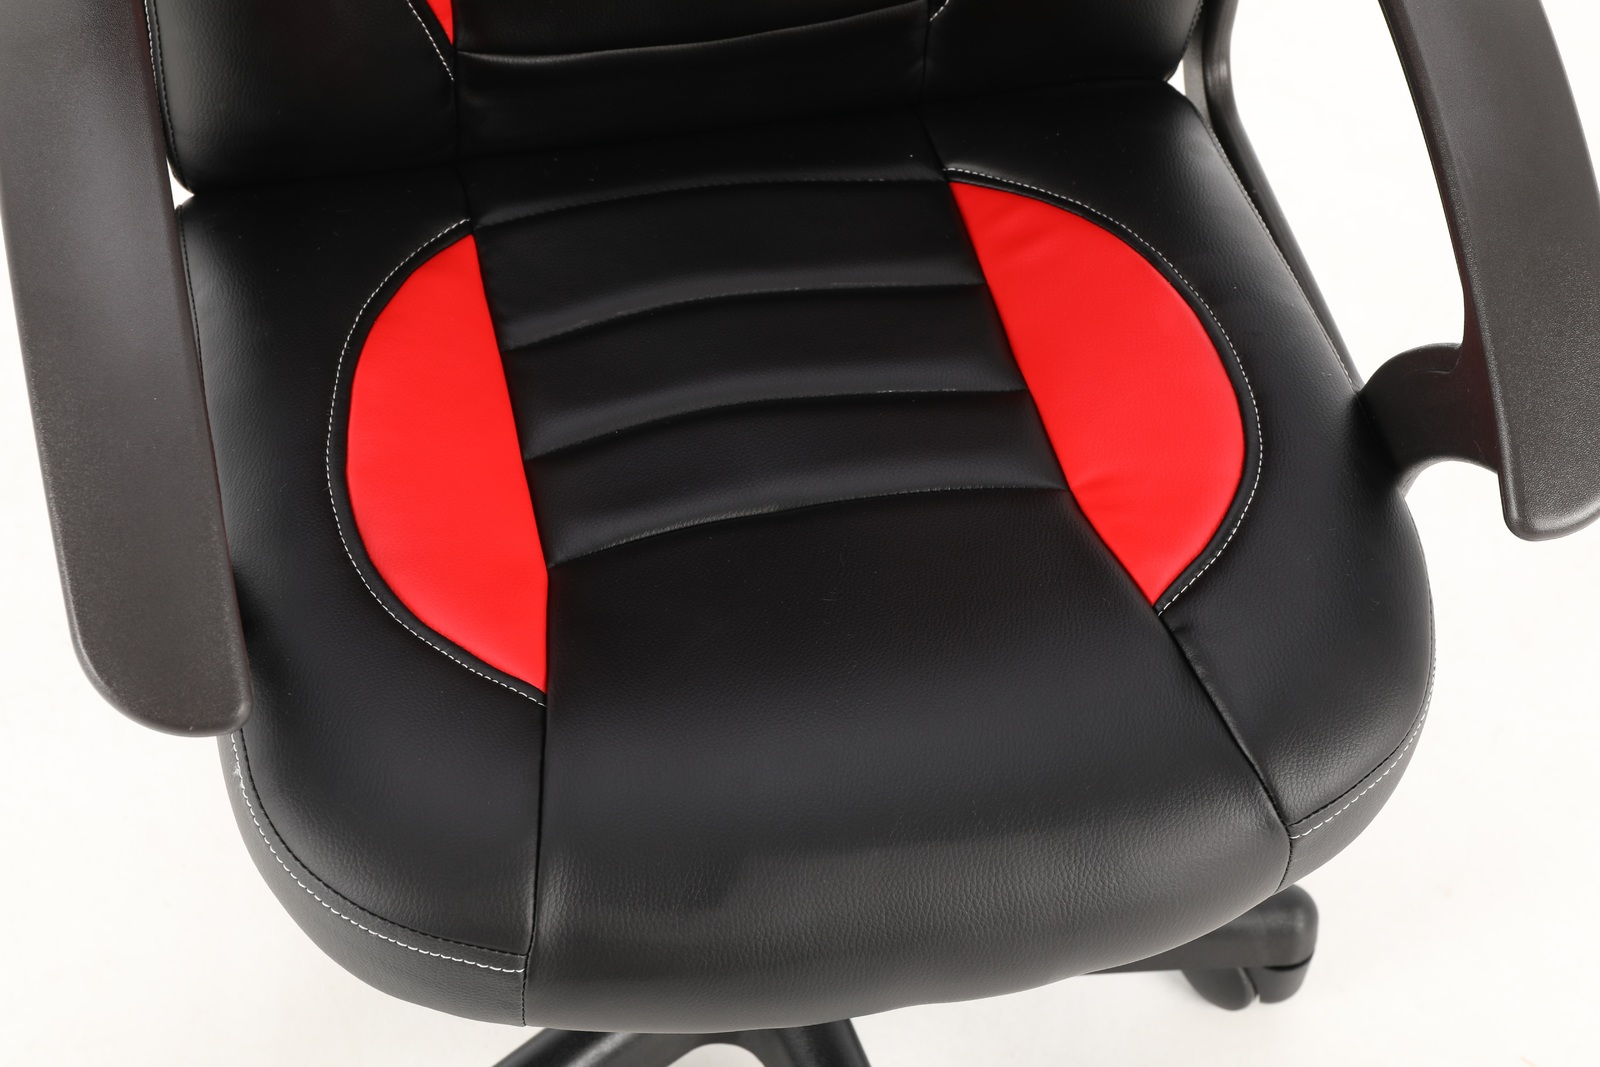 Playmax Kids Gaming Chair - Red and Black for  image